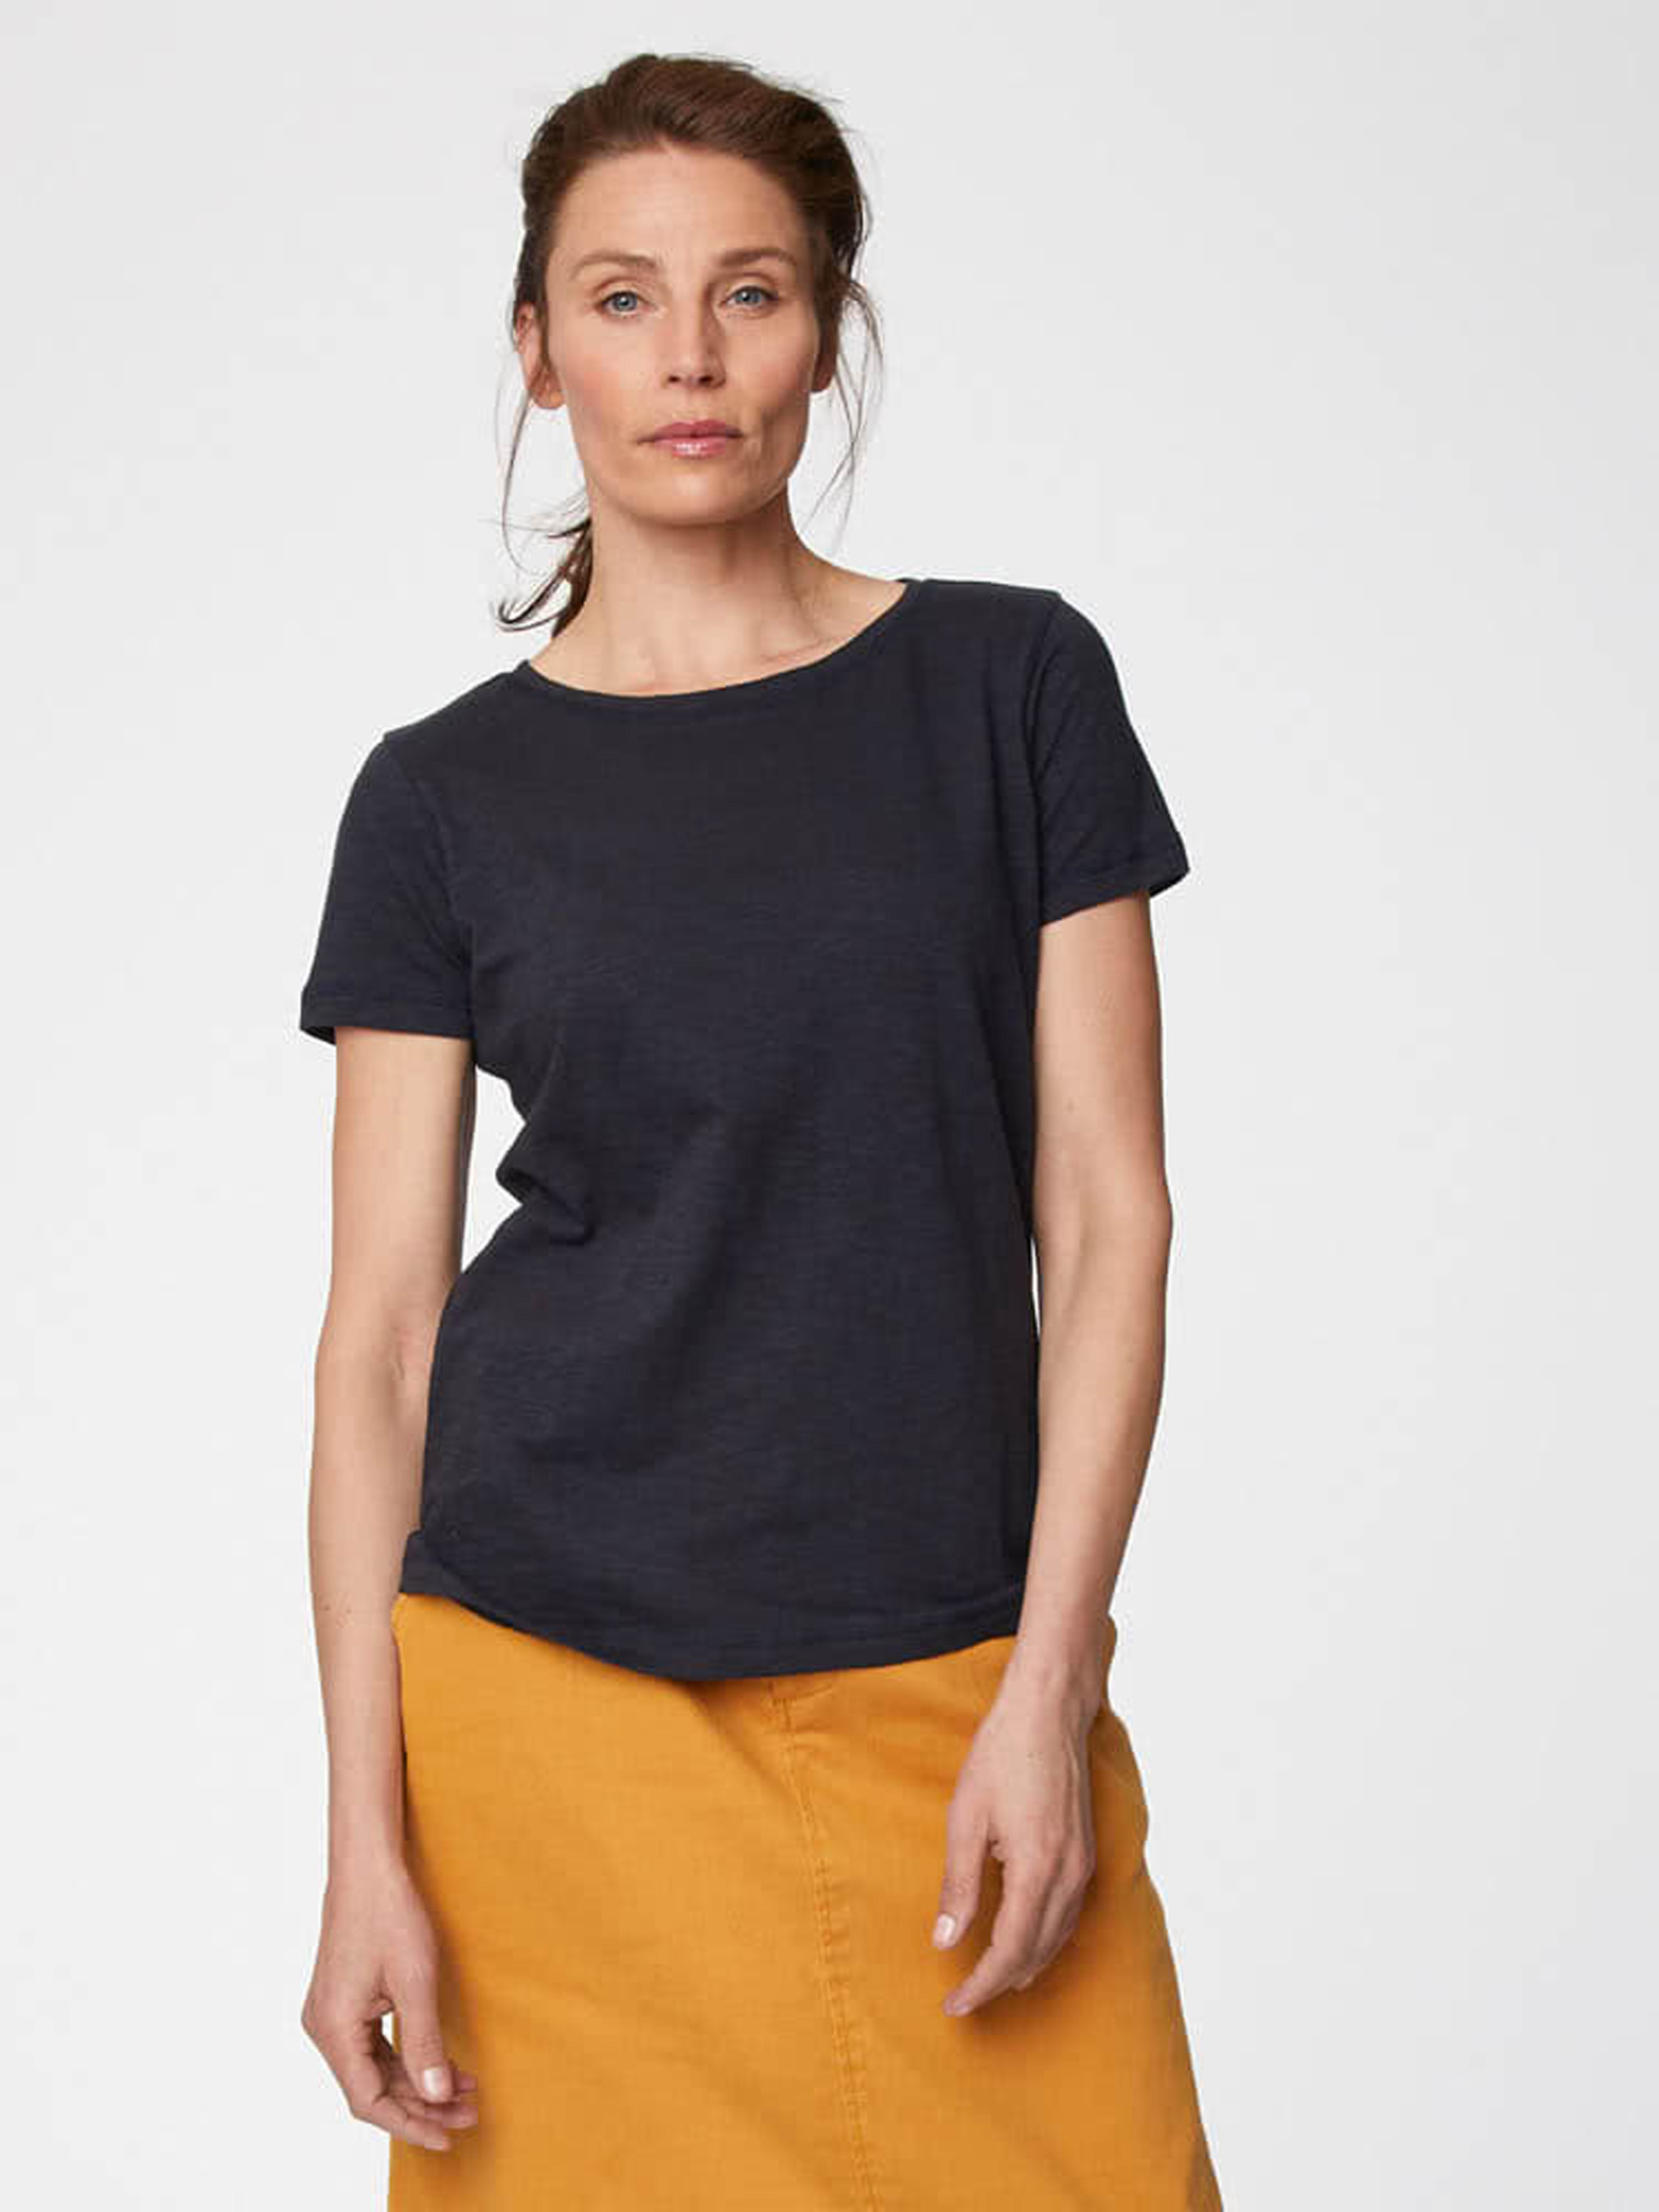 Fairtrade Organic Cotton Tee